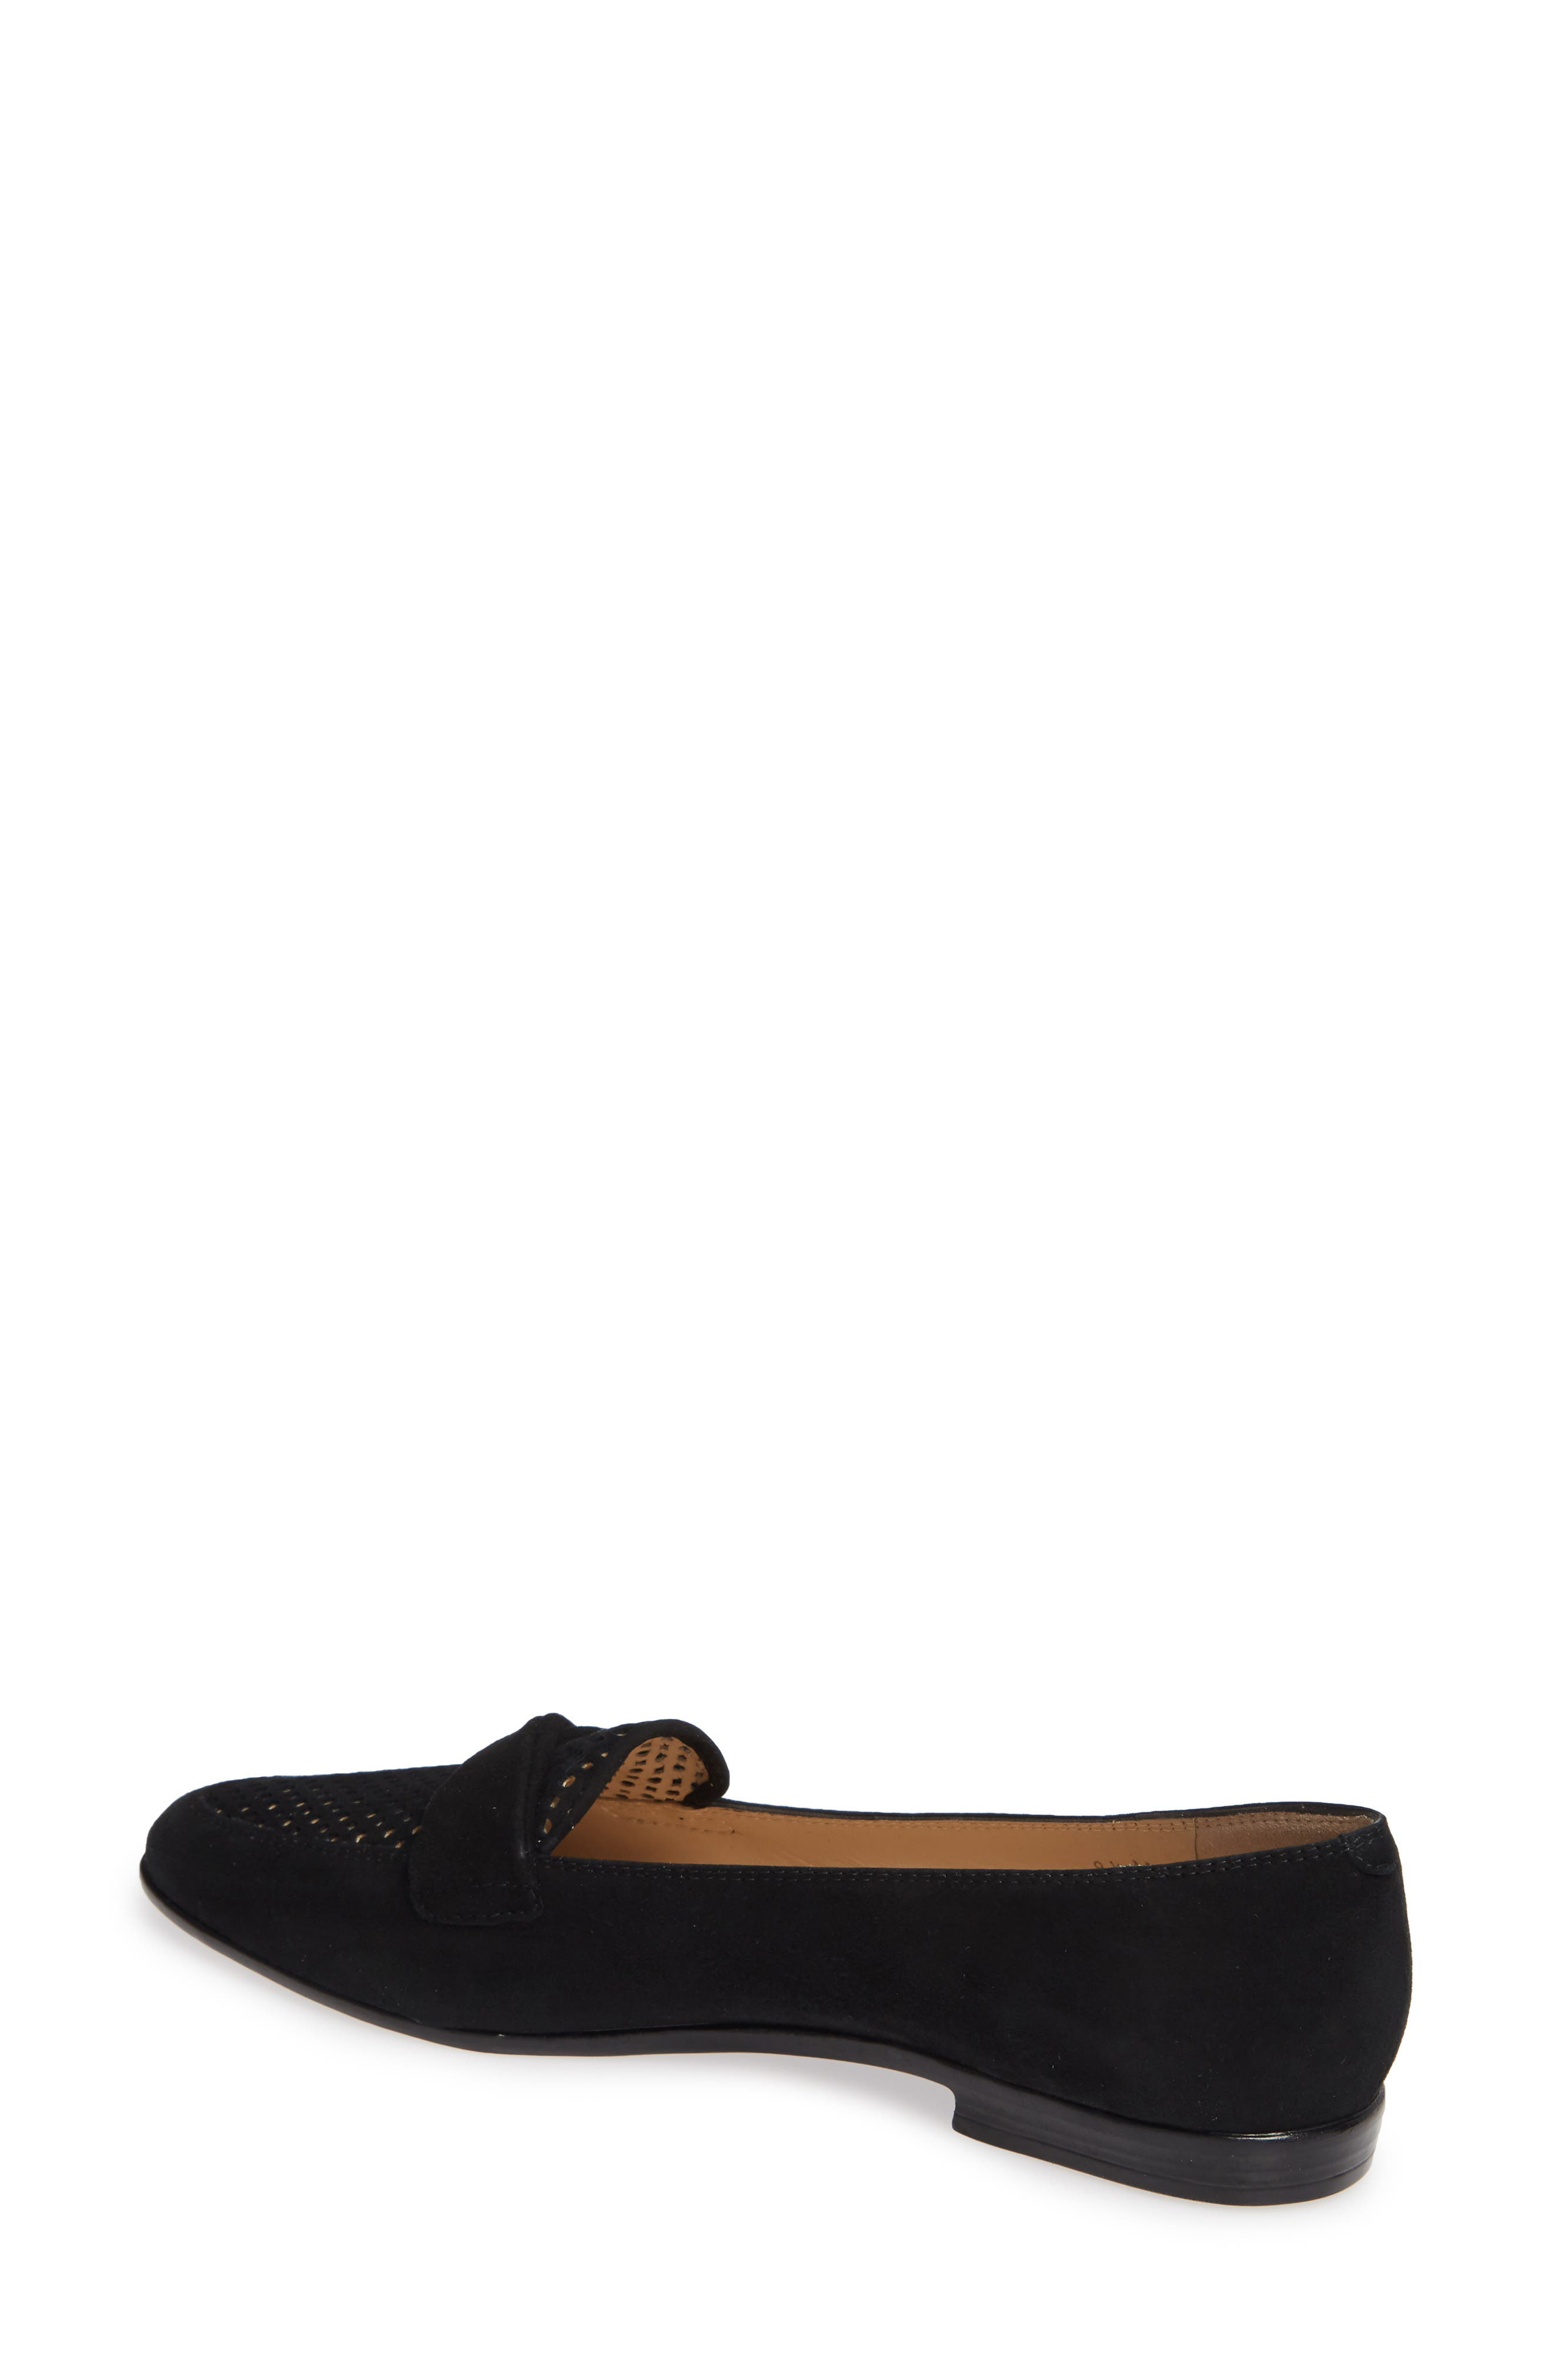 AMALFI BY RANGONI,                             Osimo X Perforated Loafer,                             Alternate thumbnail 2, color,                             BLACK SUEDE